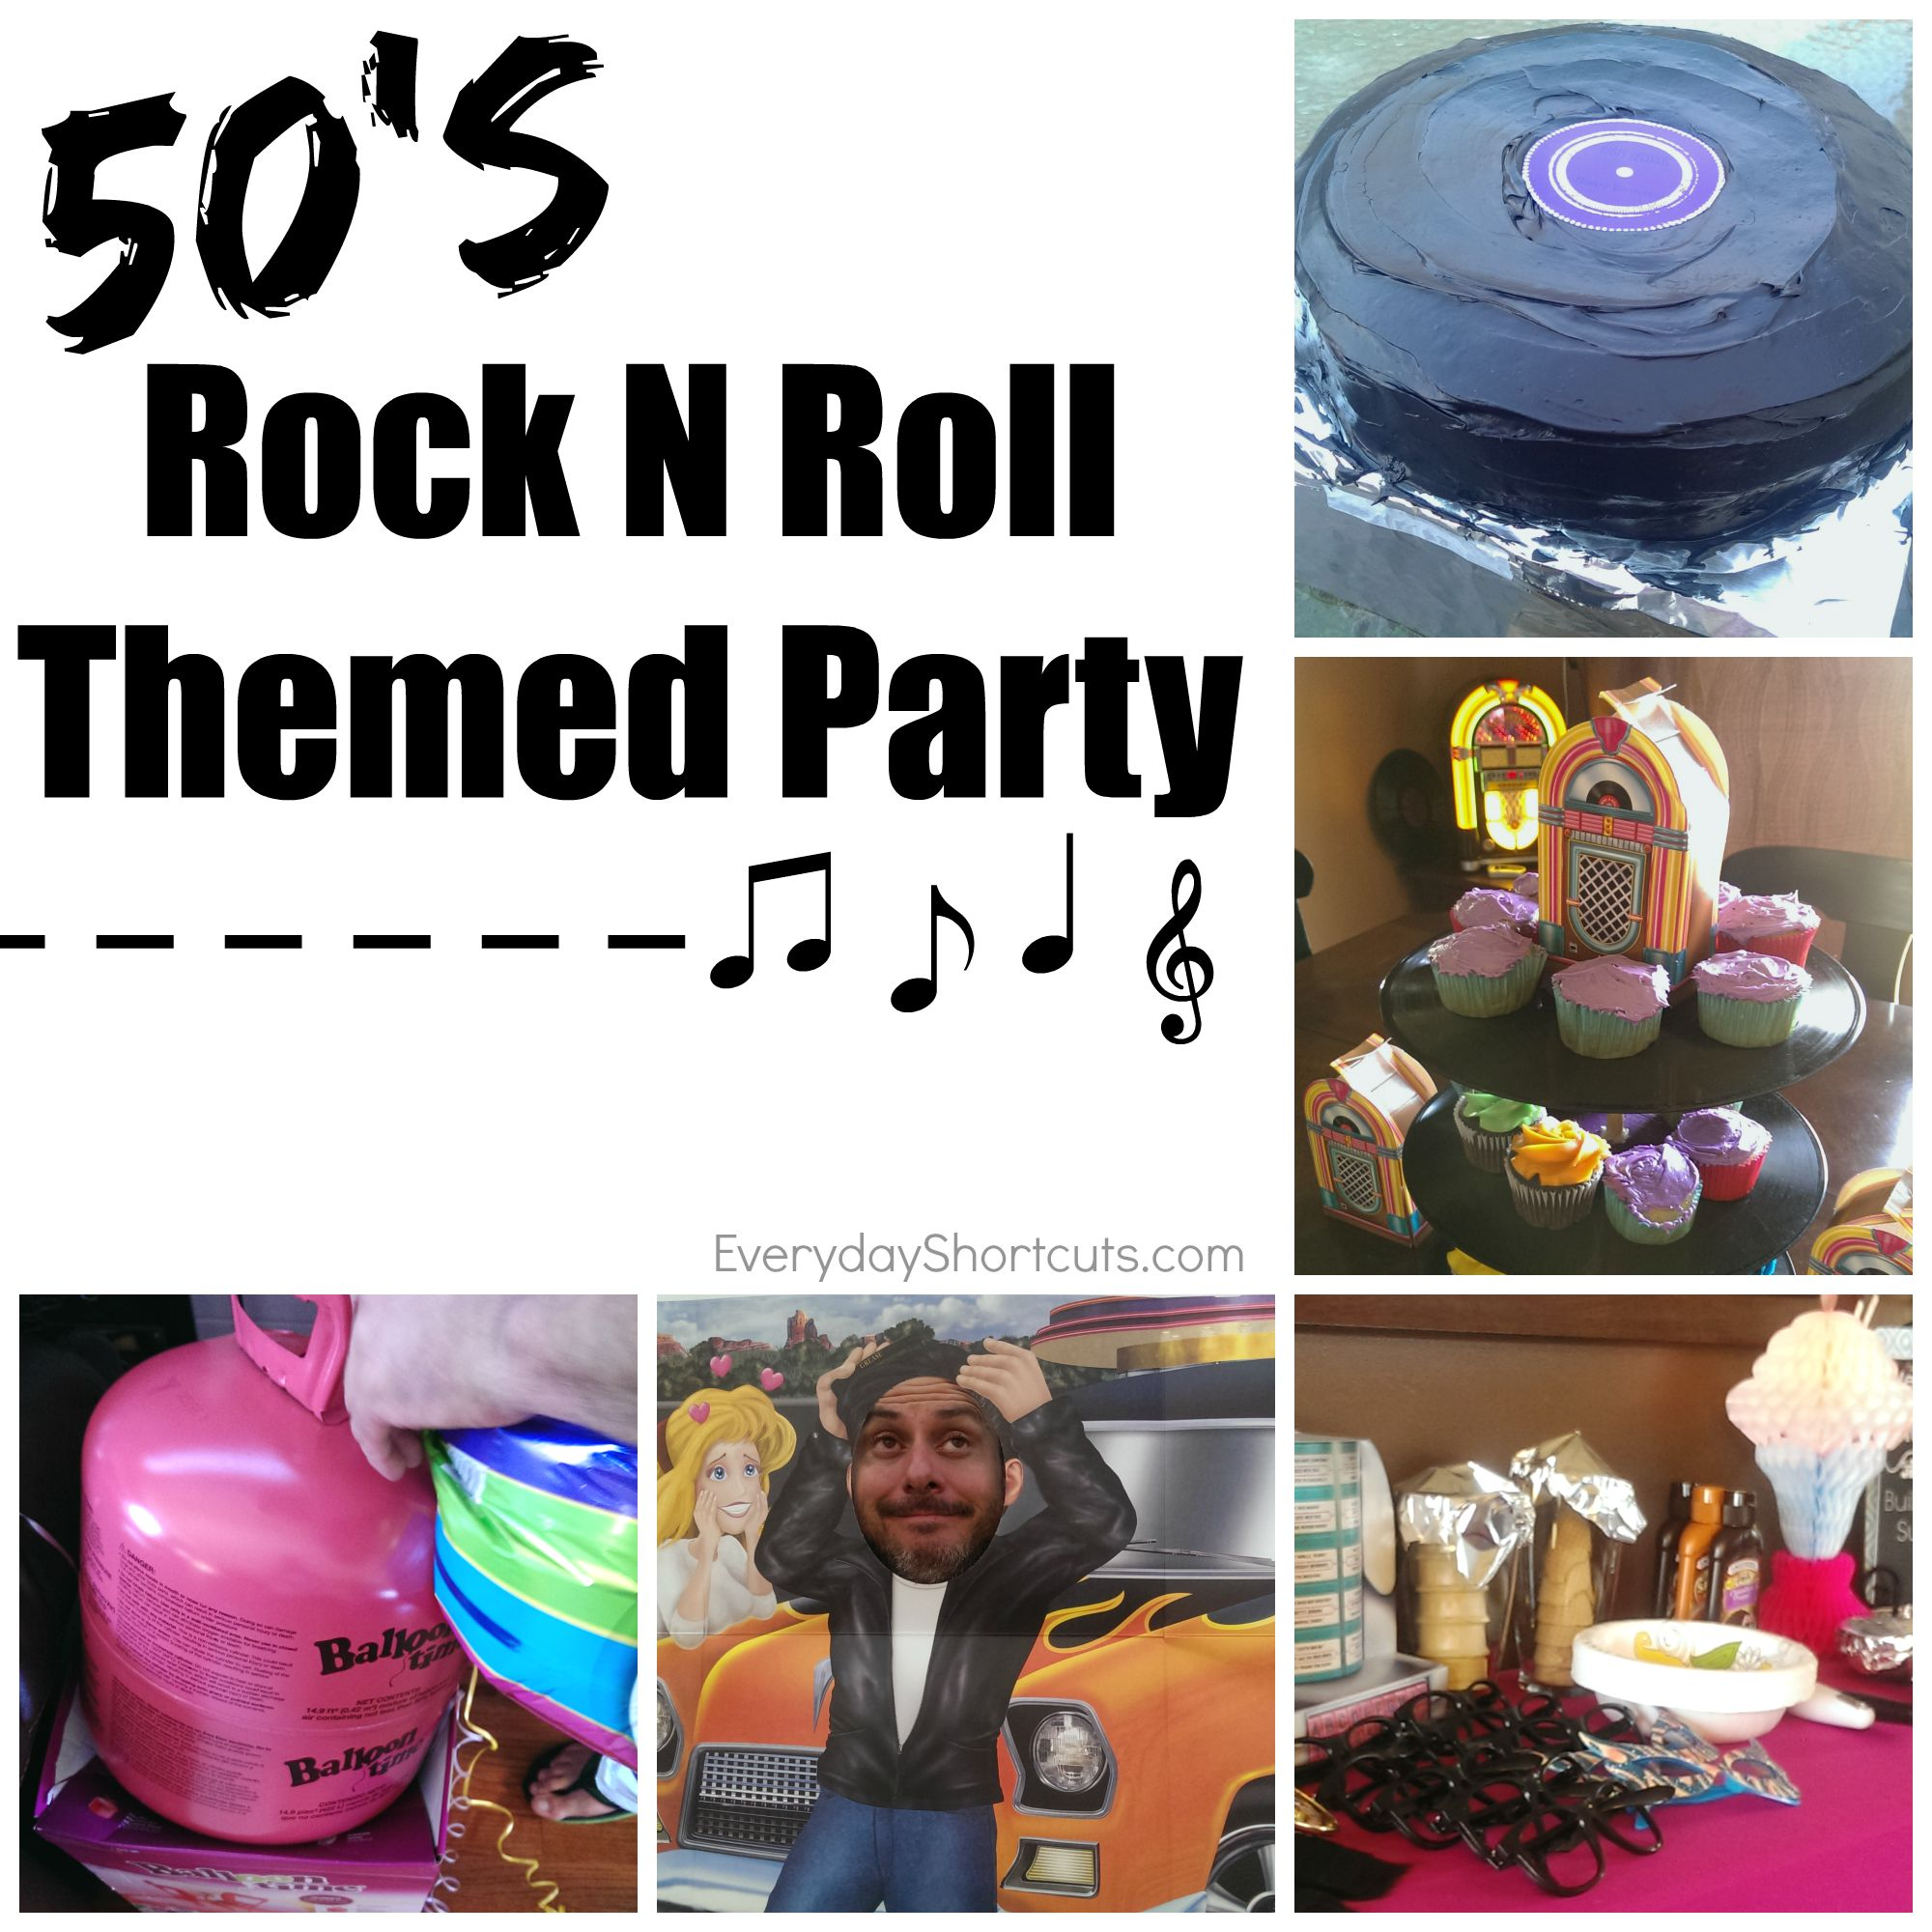 50 39 s rock n roll themed party everyday shortcuts - Rock and roll theme party decorations ...